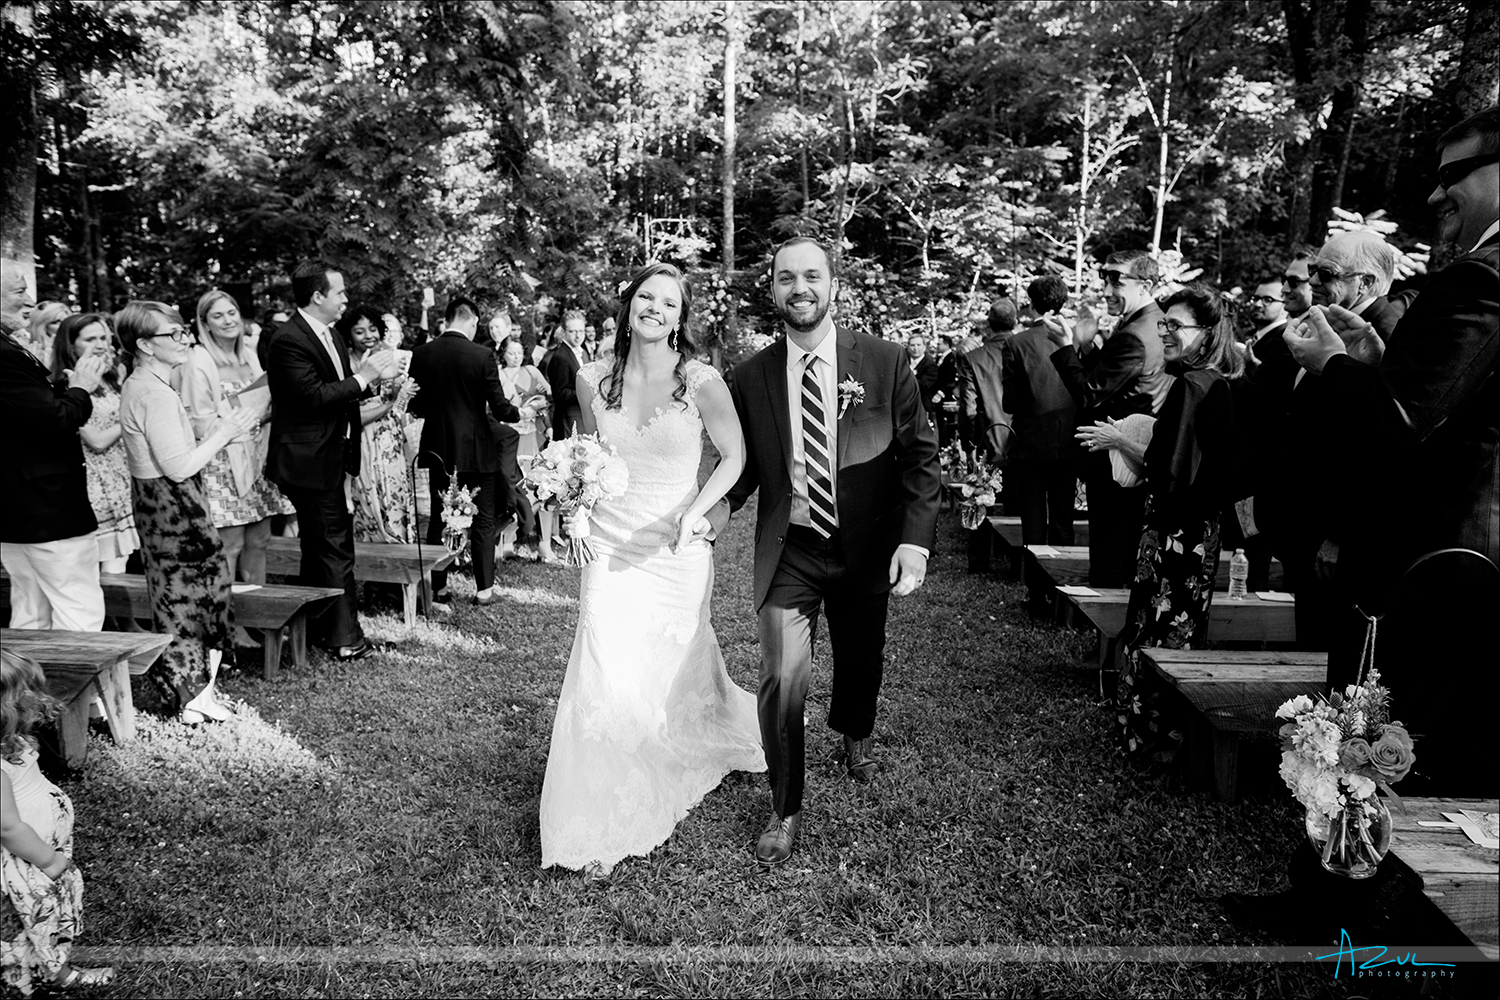 Wedding day ceremony ending as bride and groom walk down the aisle together in Chapel Hill NC